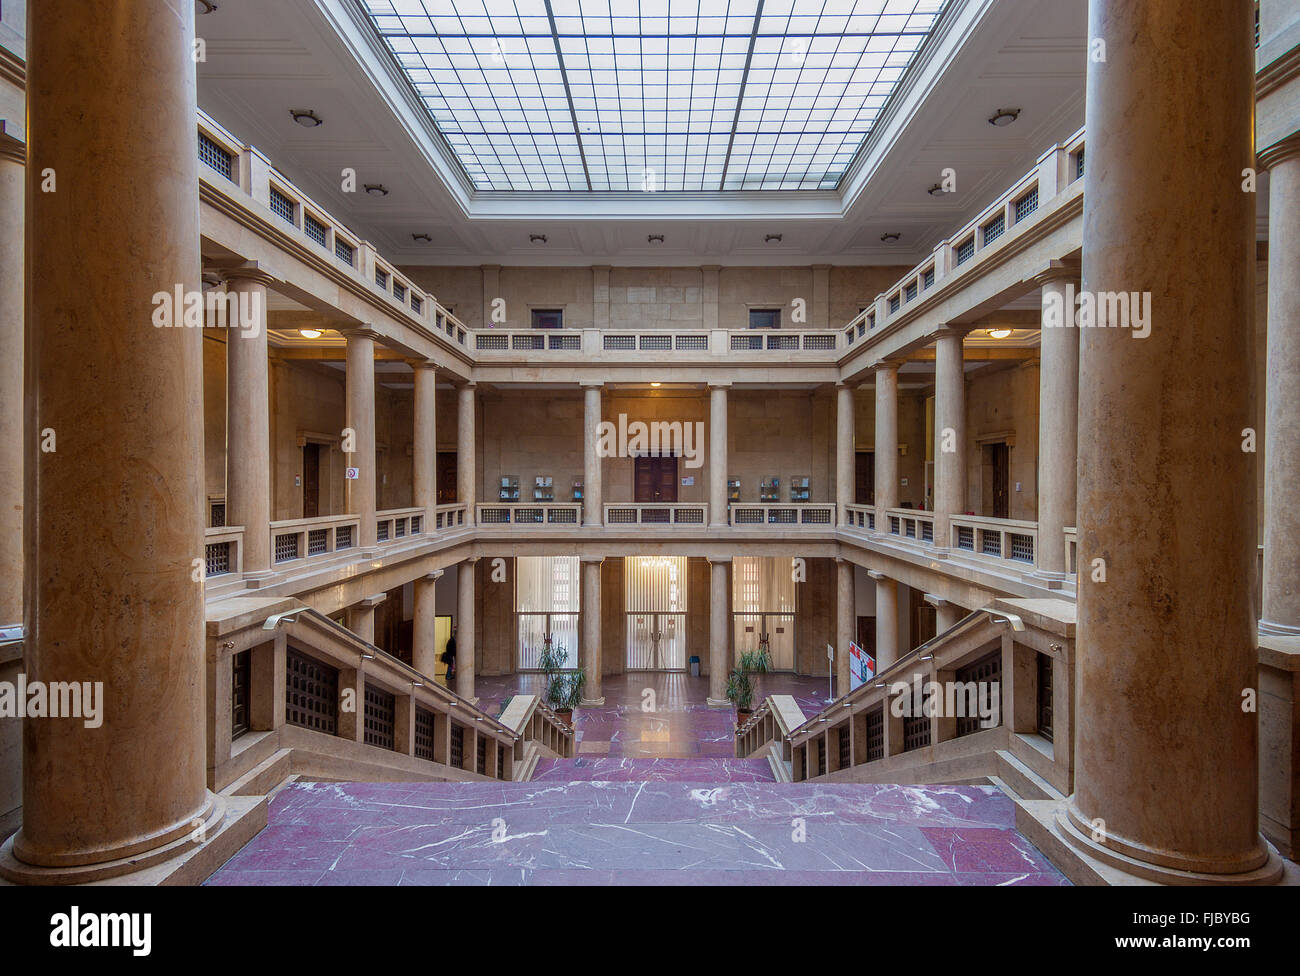 Entrance hall, Academy of Music and Theatre, built in 1937 for Adolf Hitler for representational purposes, Munich, - Stock Image